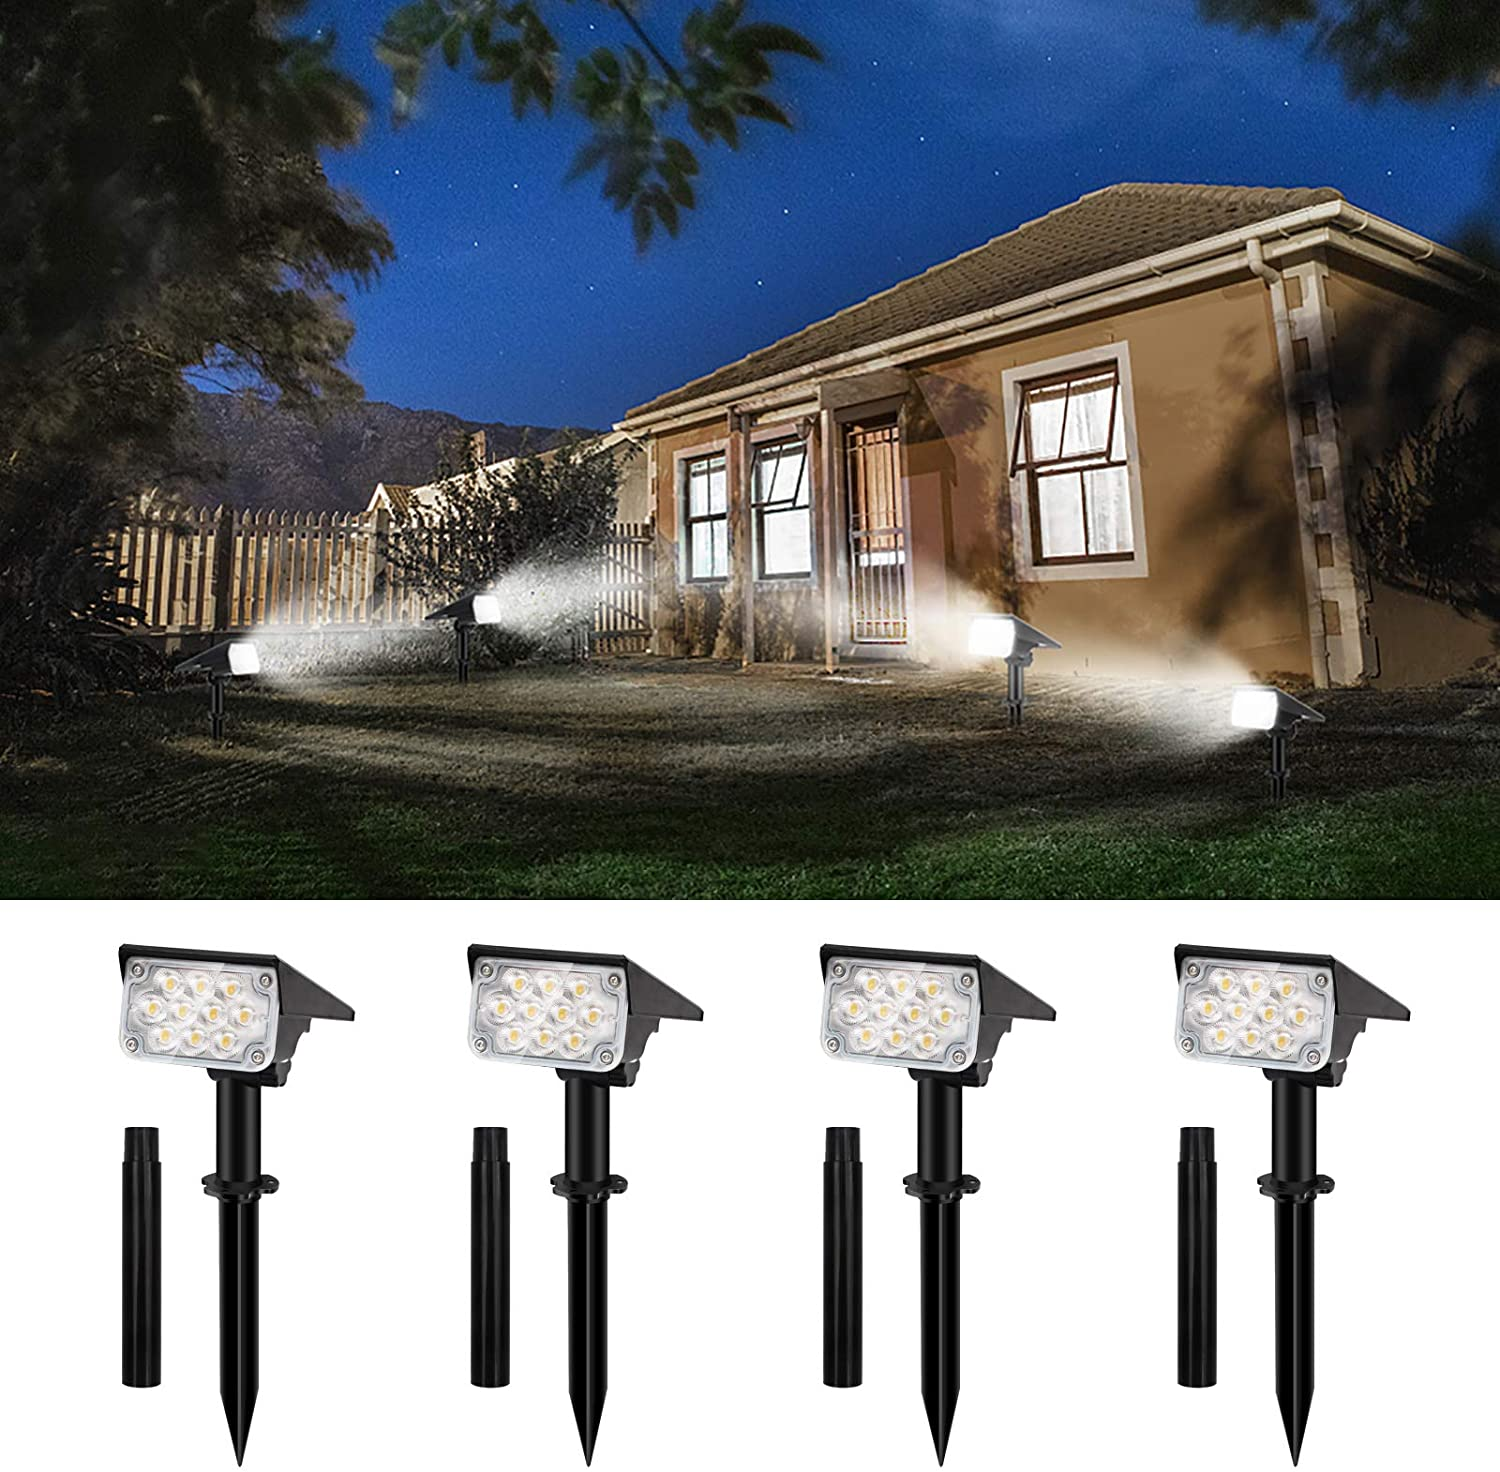 CHINLY Solar Landscape Spotlights, Outdoor Waterproof Solar-Powered Spot Lights with 20 LED & Extension Stake, IP67 Wireless Wall Lights for Yard Tree Garden Lawns Pathway Pool (White 4 Pack)